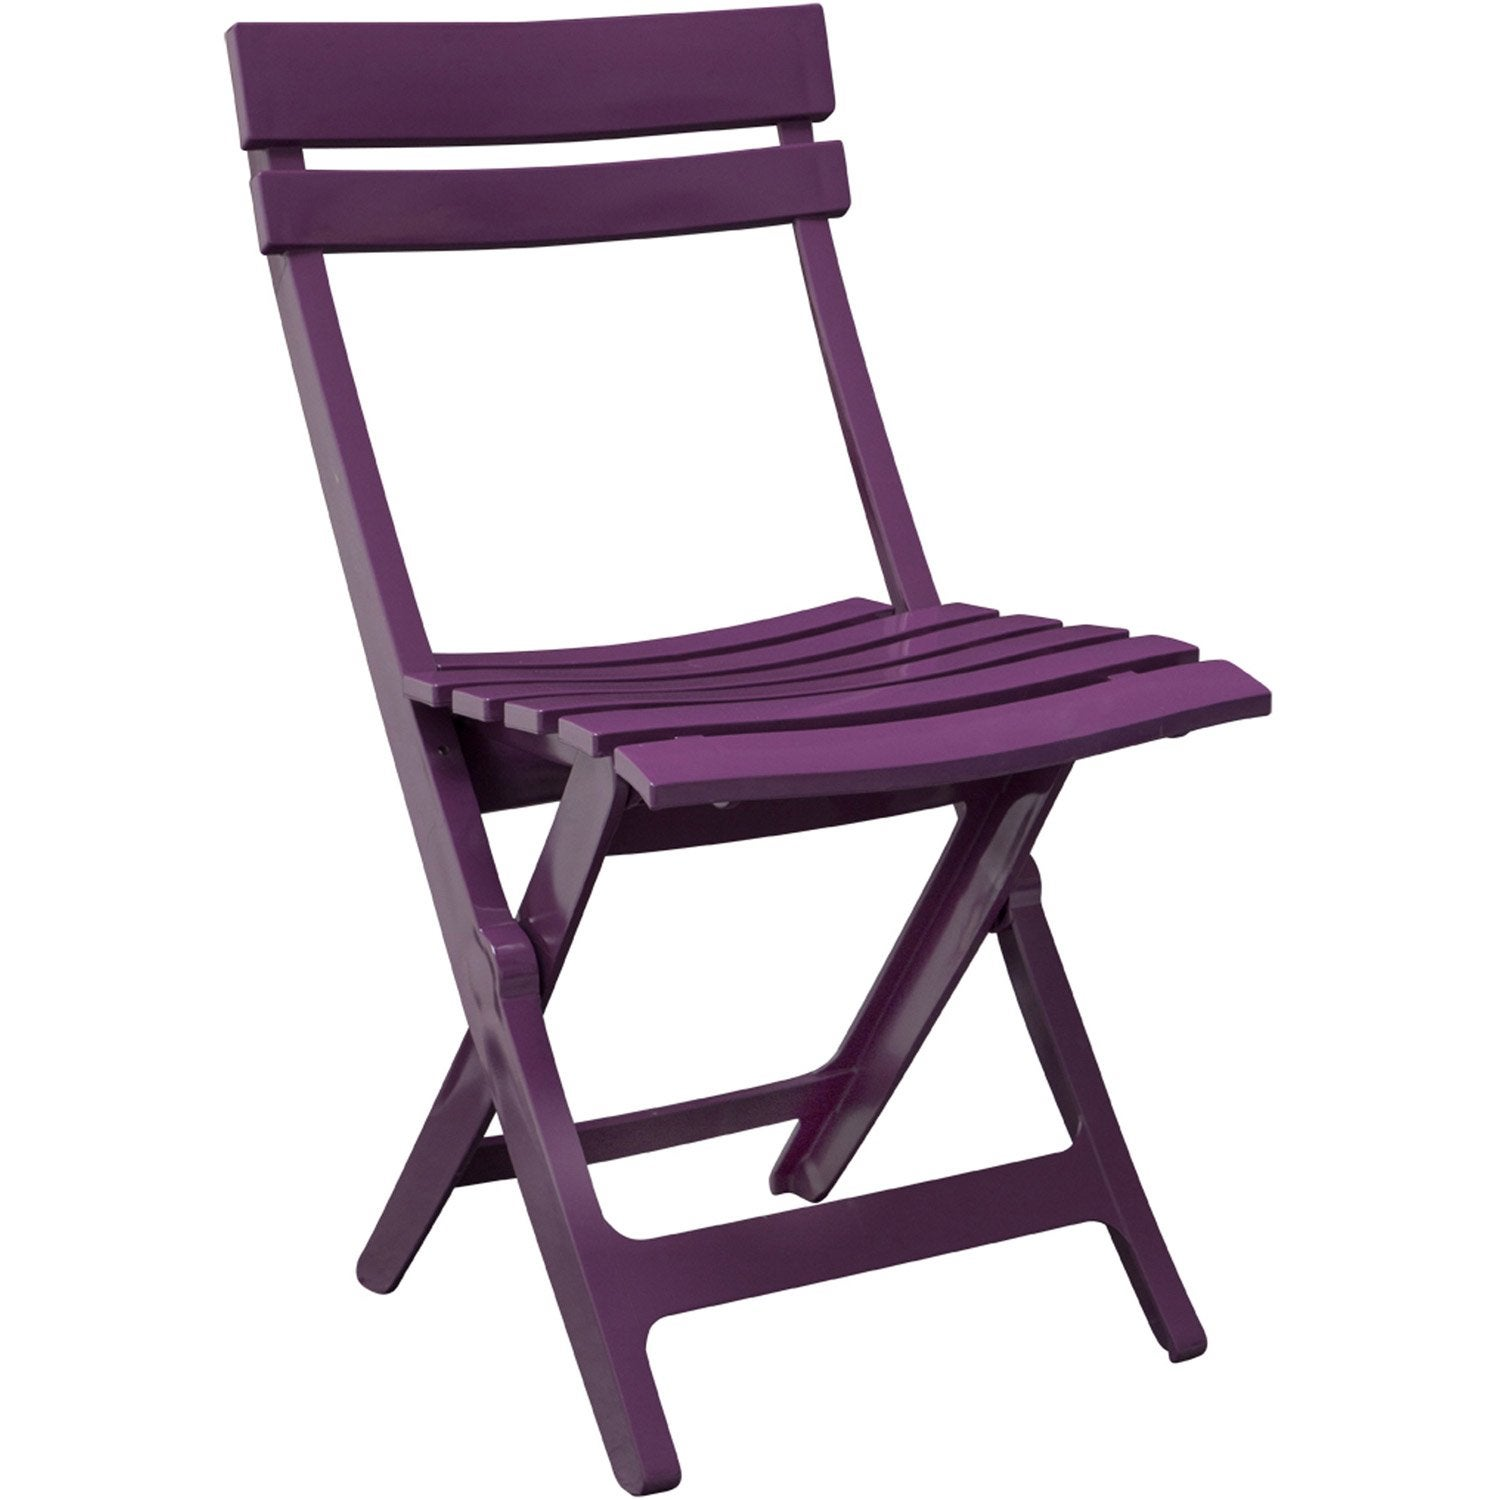 Chaise de jardin en r sine miami violet leroy merlin for Chaise longue leroy merlin